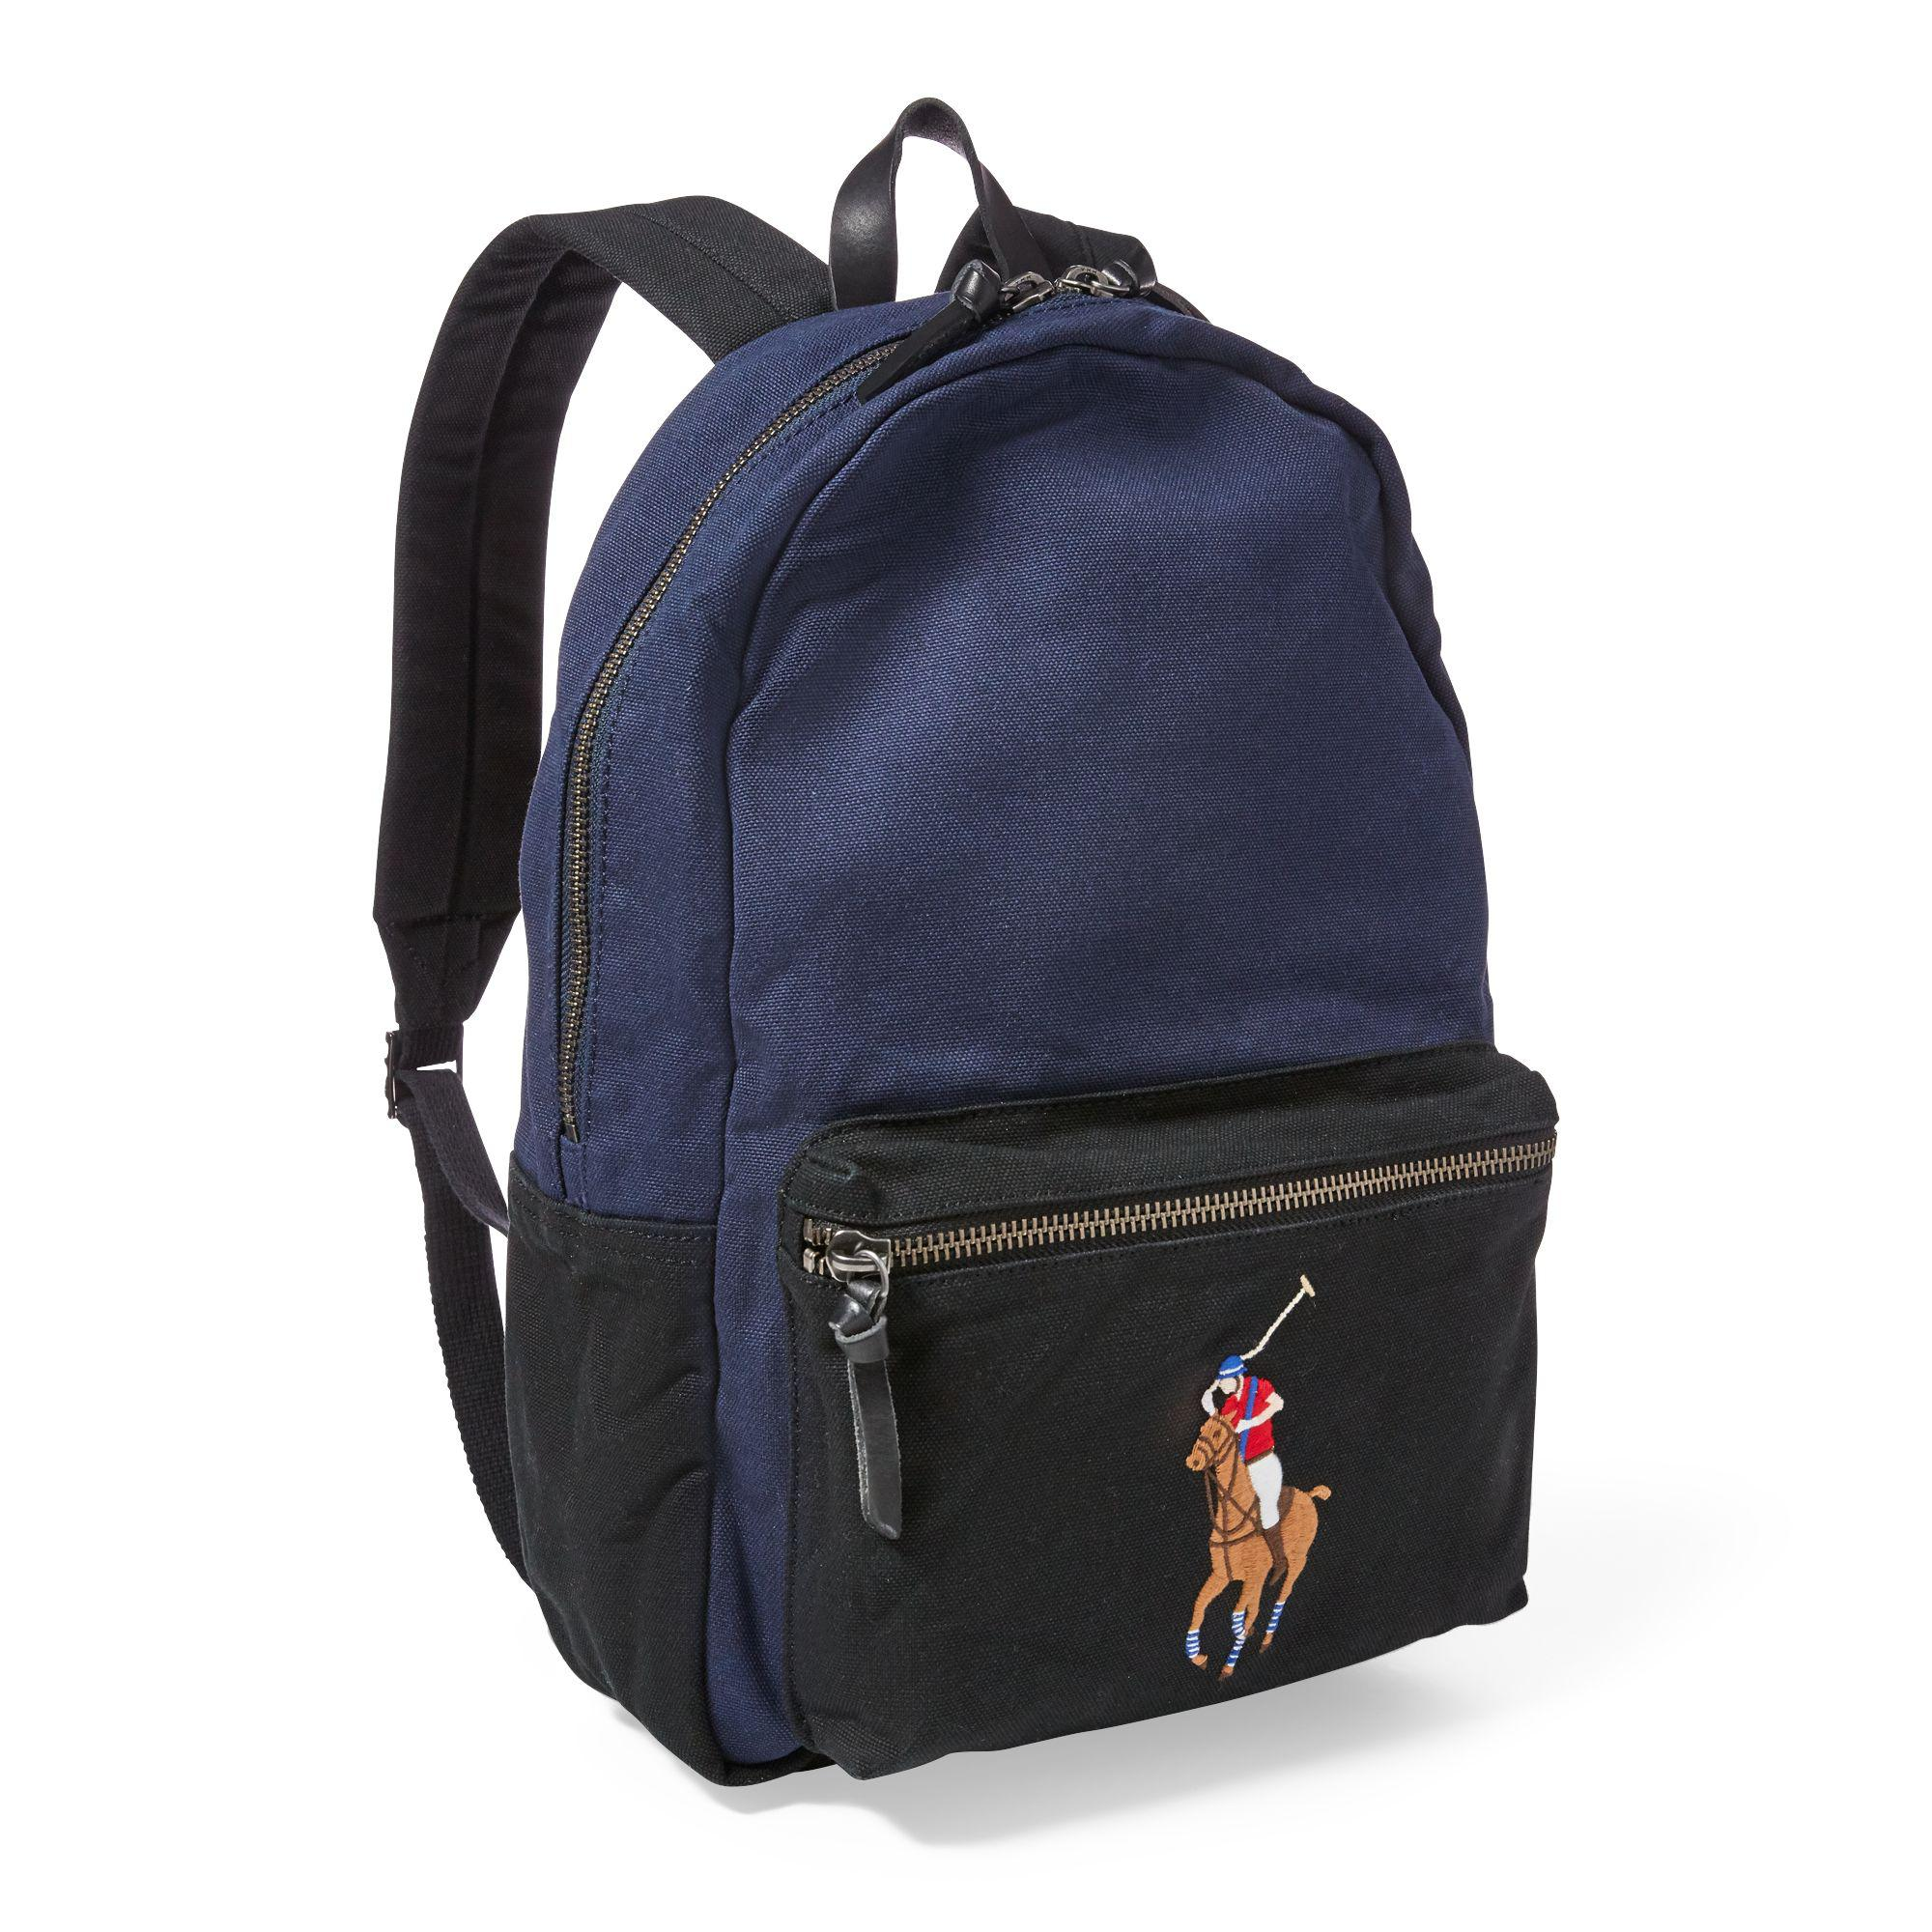 Polo Ralph Lauren Canvas Big Pony Backpack for Men - Lyst 623d656c6de5e